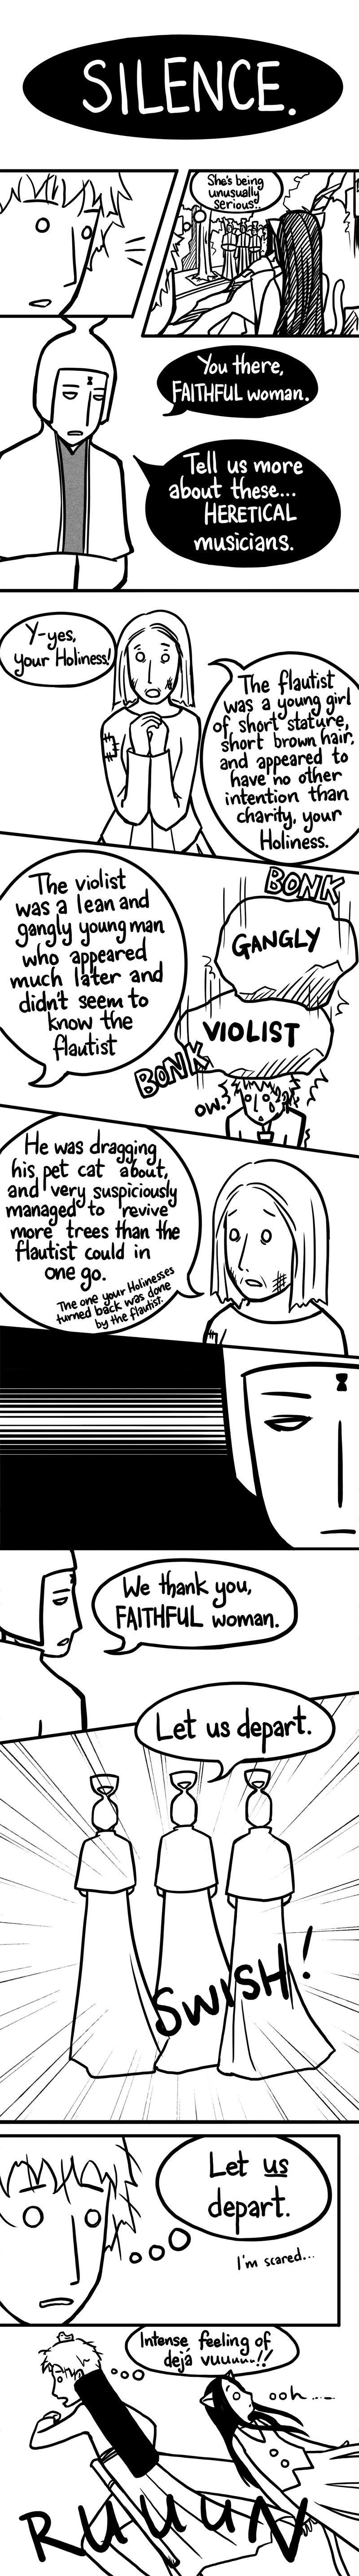 comic-2012-03-01-Swish.jpg